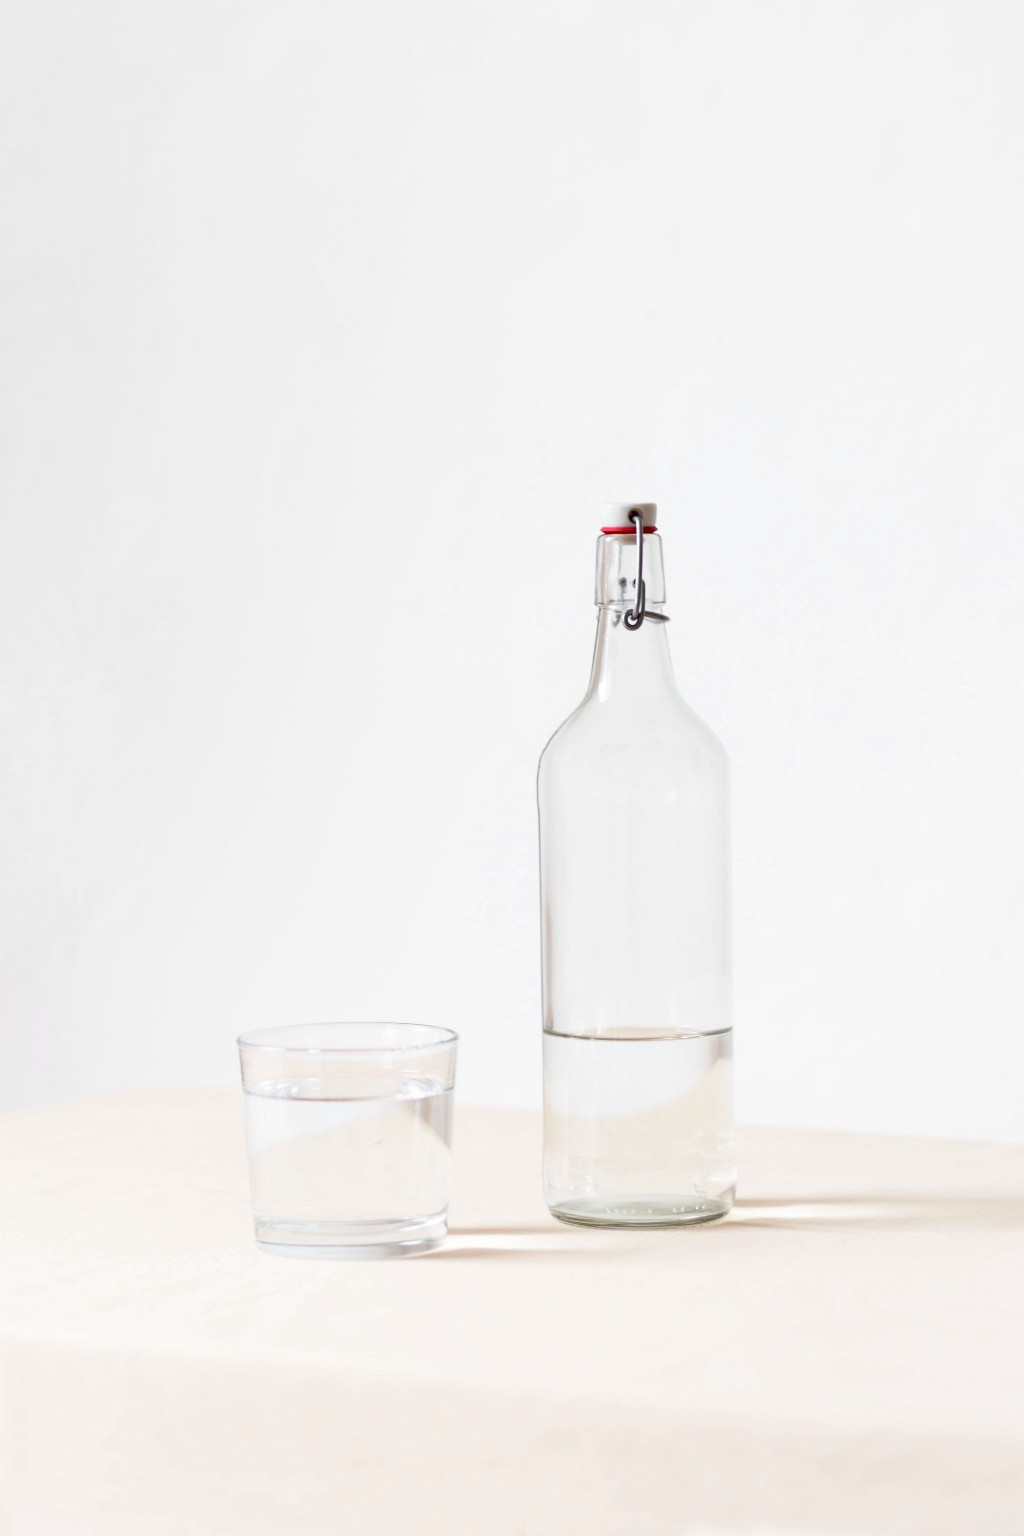 Are You a Bottleneck? How Founders Can Limit Their Company Growth